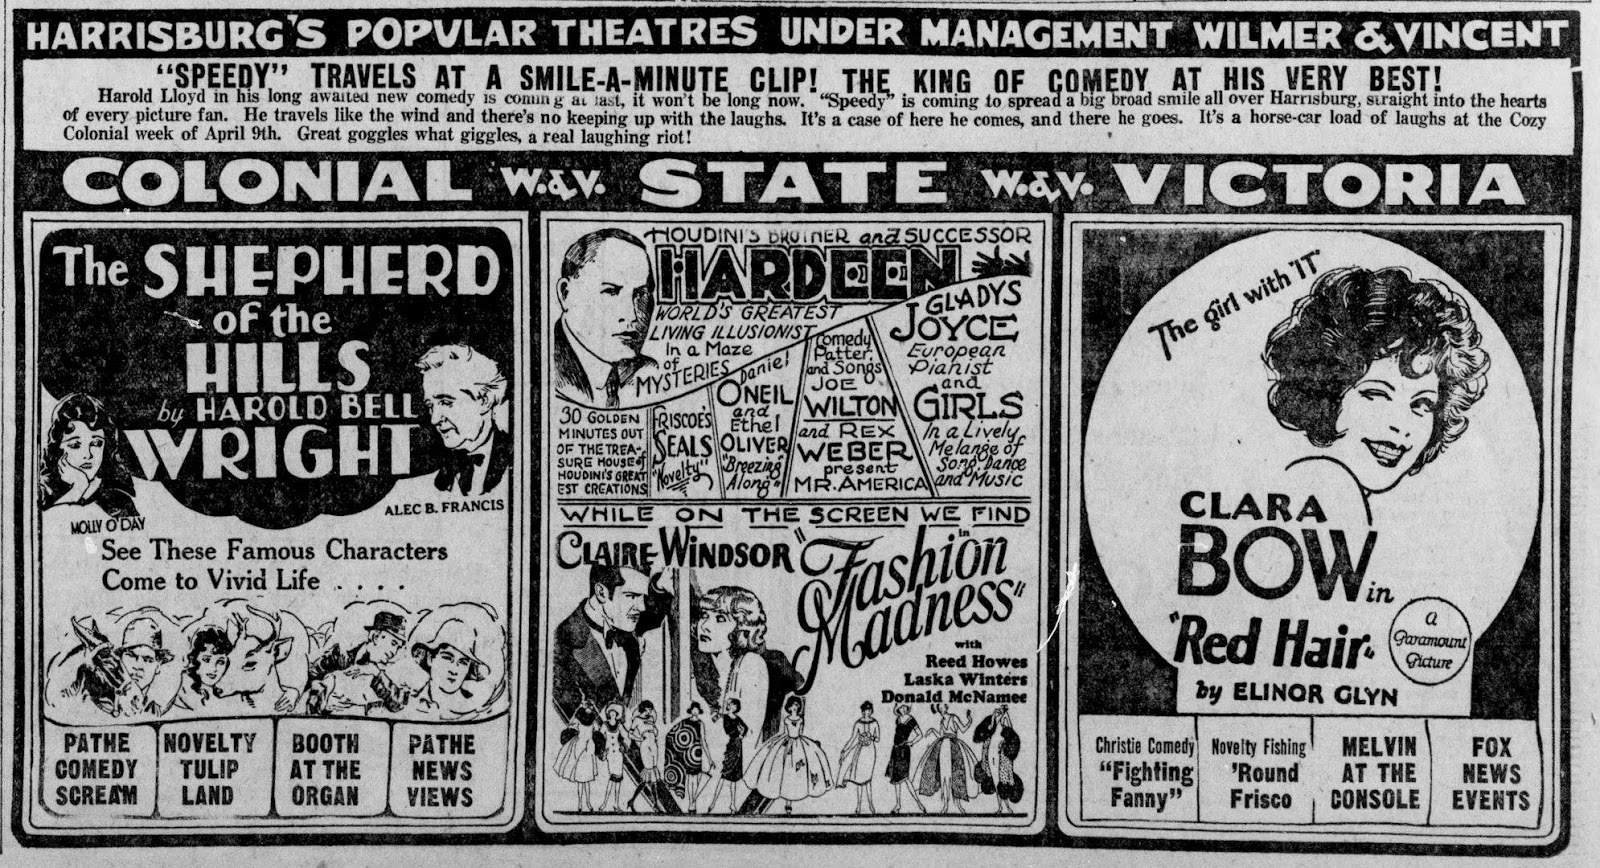 Ad for one of Hardeen's performances at Harrisburg's Popular Theatres